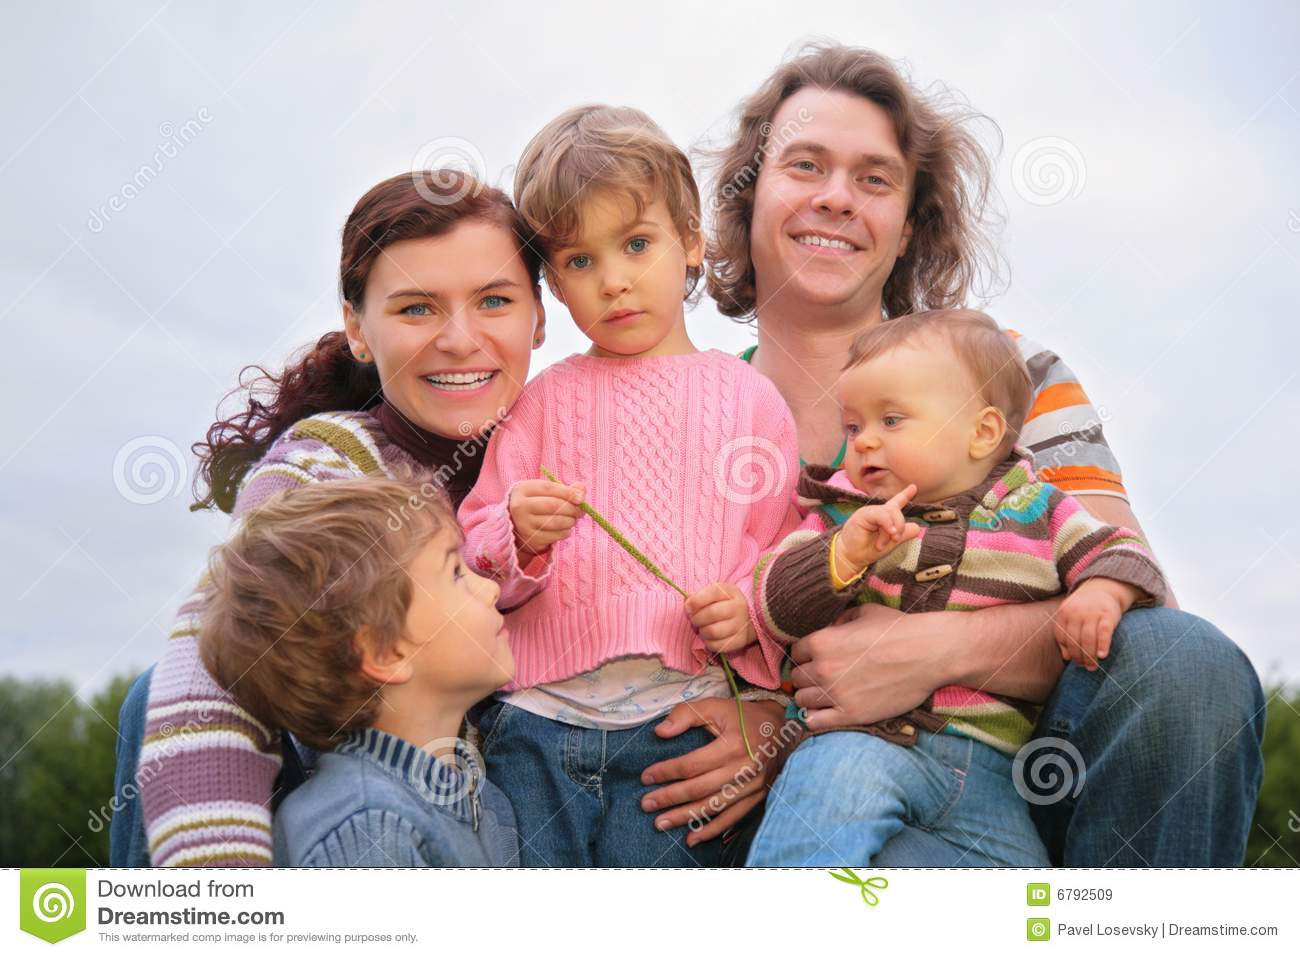 Family of five portrait